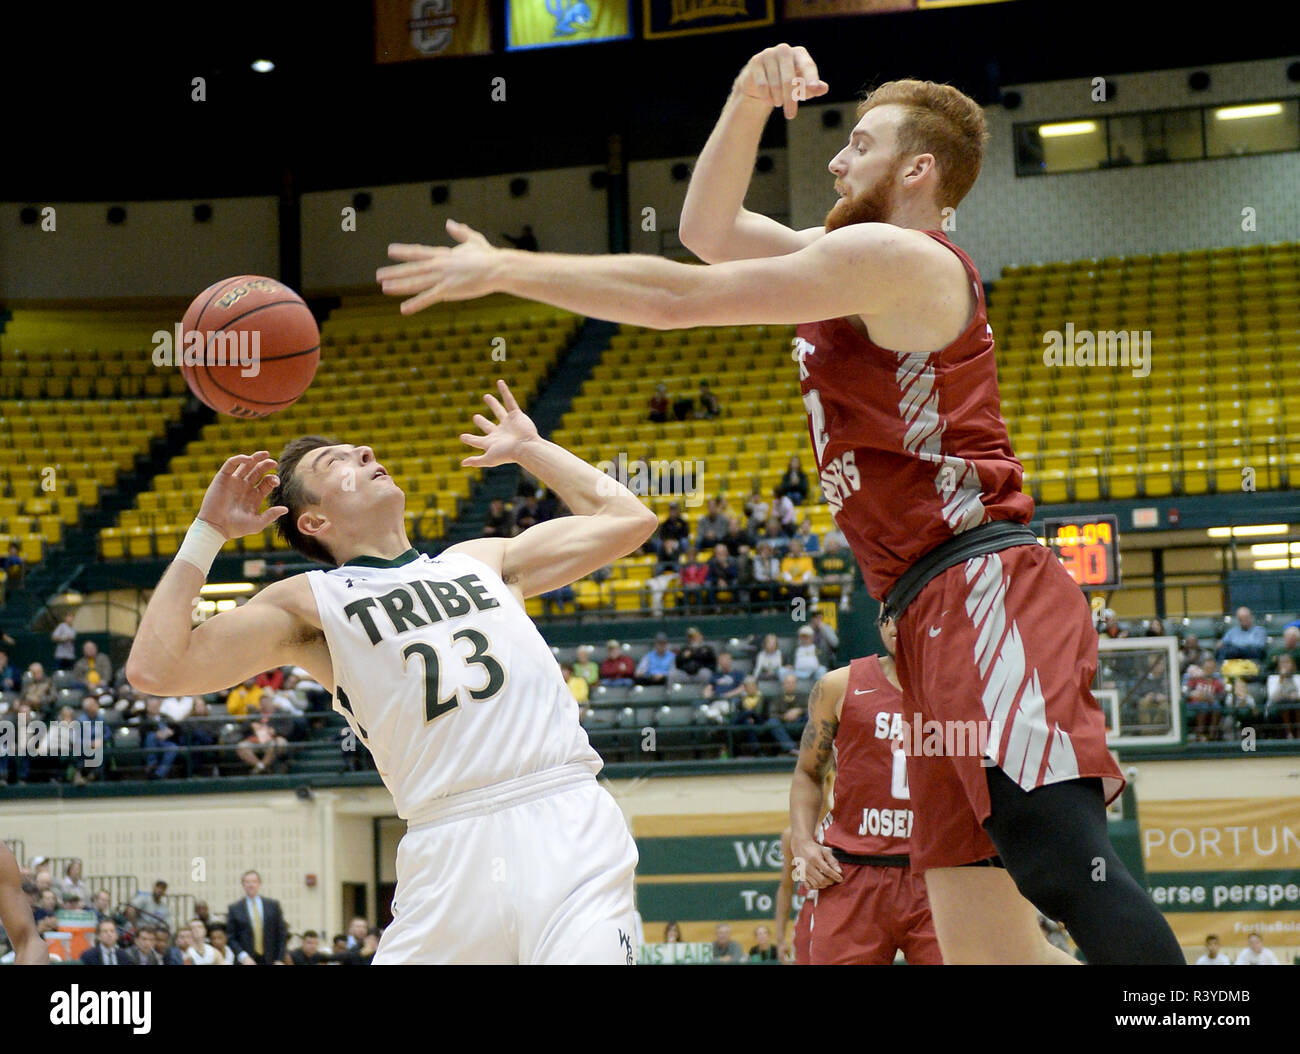 Williamsburg, VA, USA. 24th Nov, 2018. 20181124 - William and Mary forward JUSTIN PIERCE (23) and St. Joseph's forward ANTHONY LONGPRE (12) go for a rebound in the second half at Kaplan Arena in Williamsburg, Va. Credit: Chuck Myers/ZUMA Wire/Alamy Live News - Stock Image